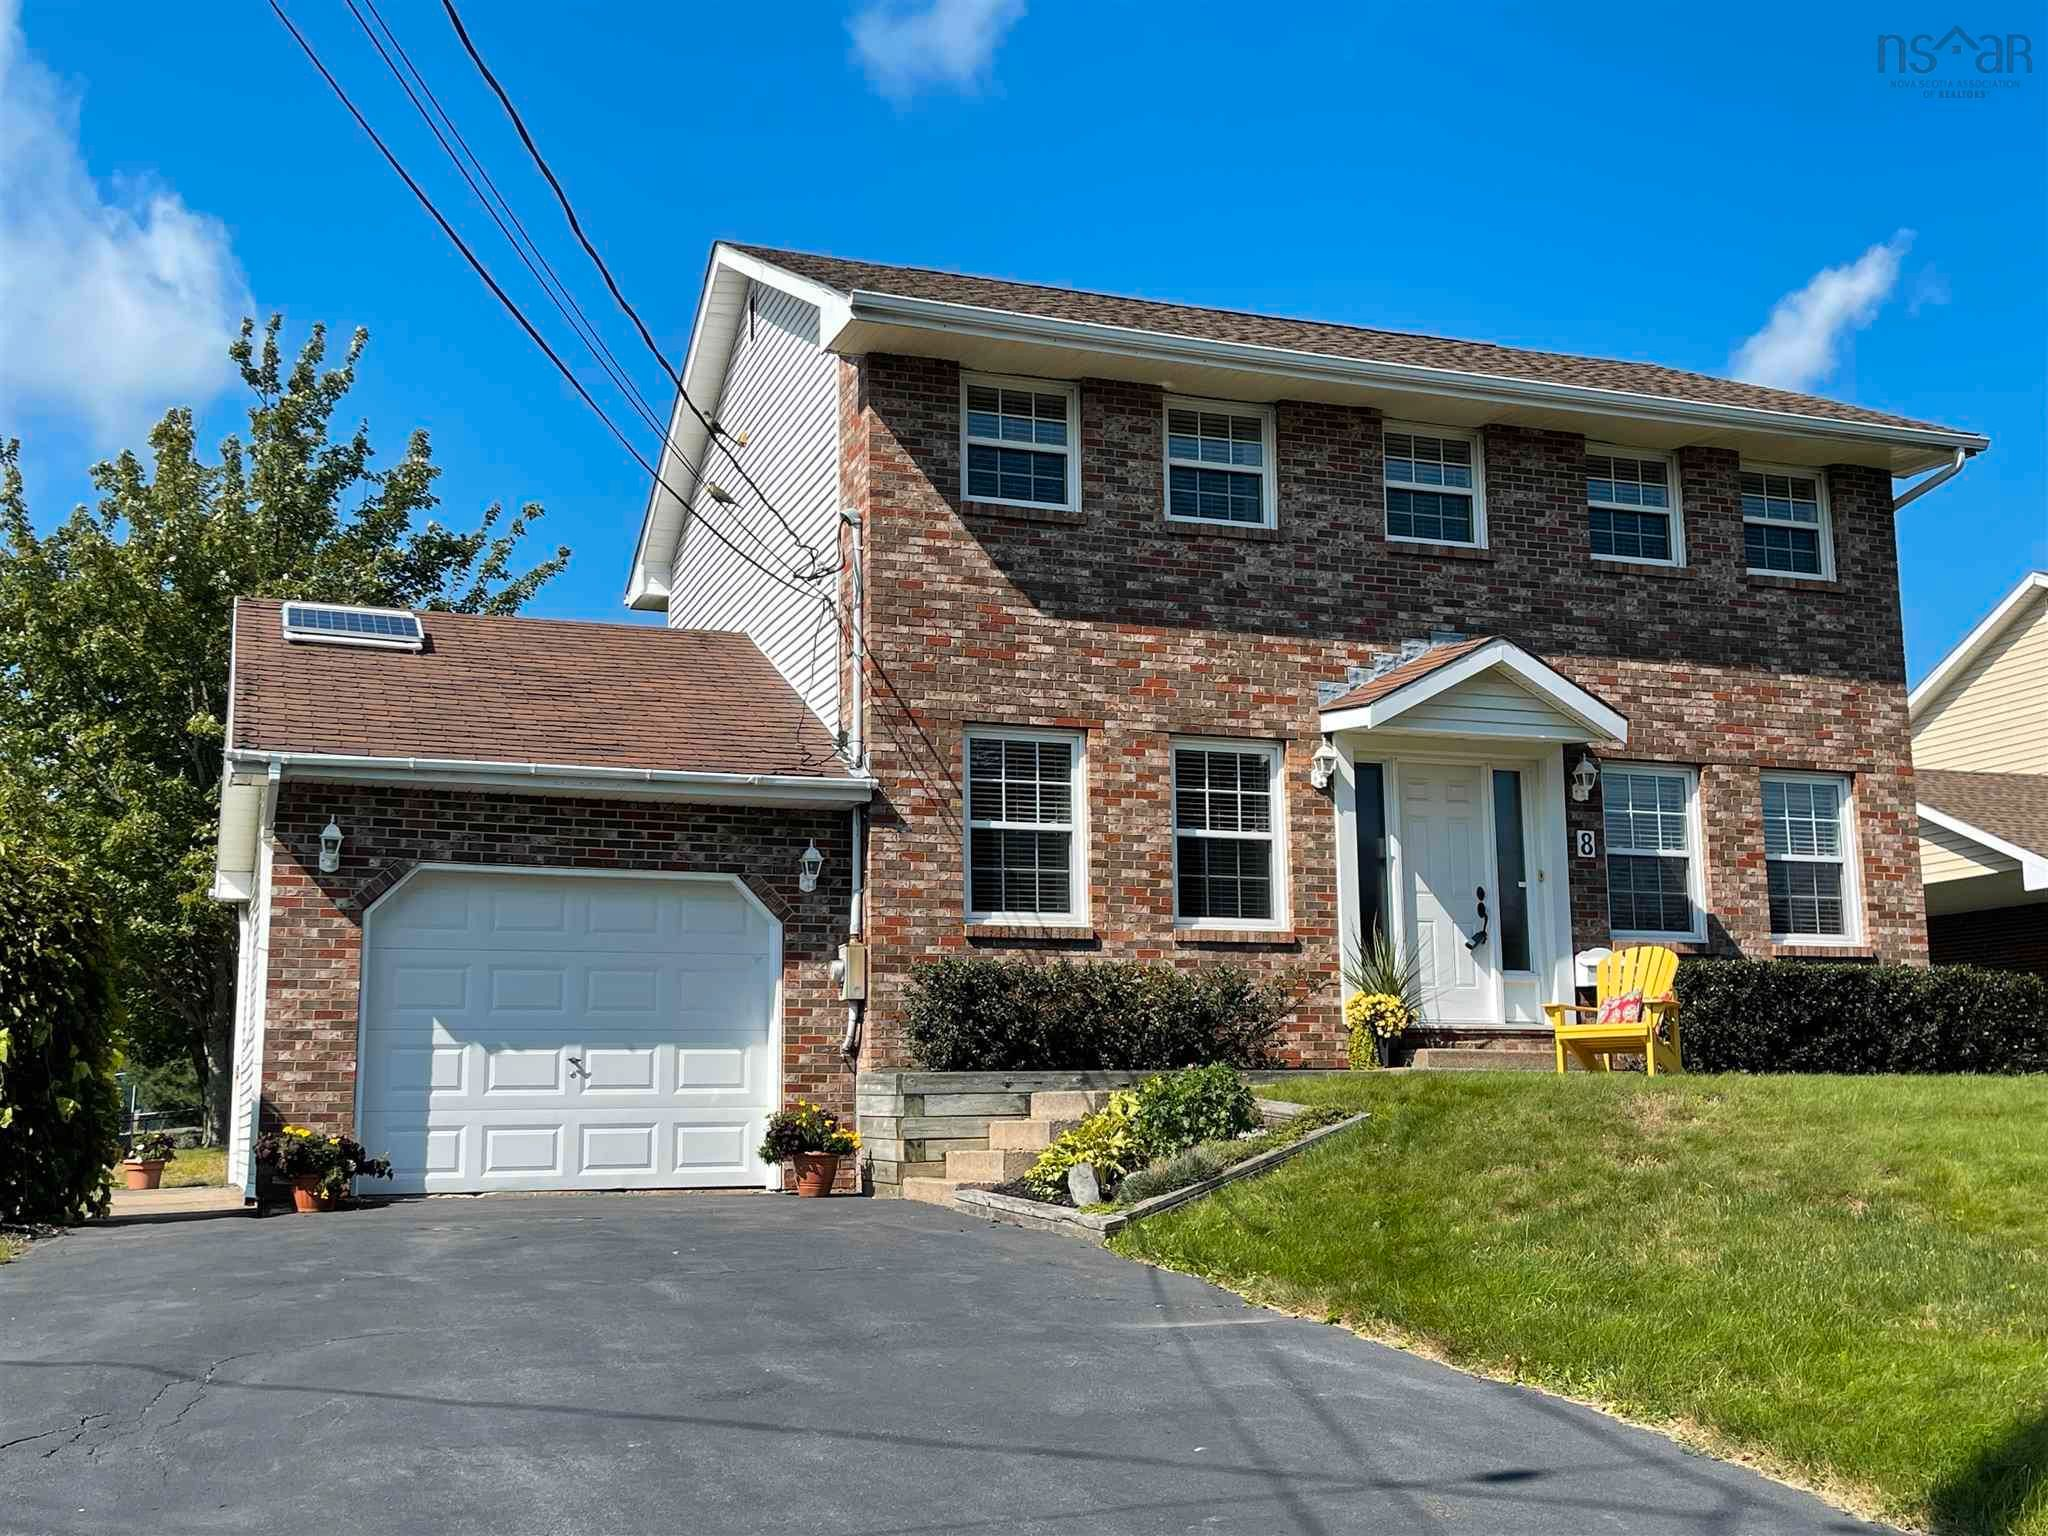 Main Photo: 8 Hampshire Way in Colby Village: 16-Colby Area Residential for sale (Halifax-Dartmouth)  : MLS®# 202123654